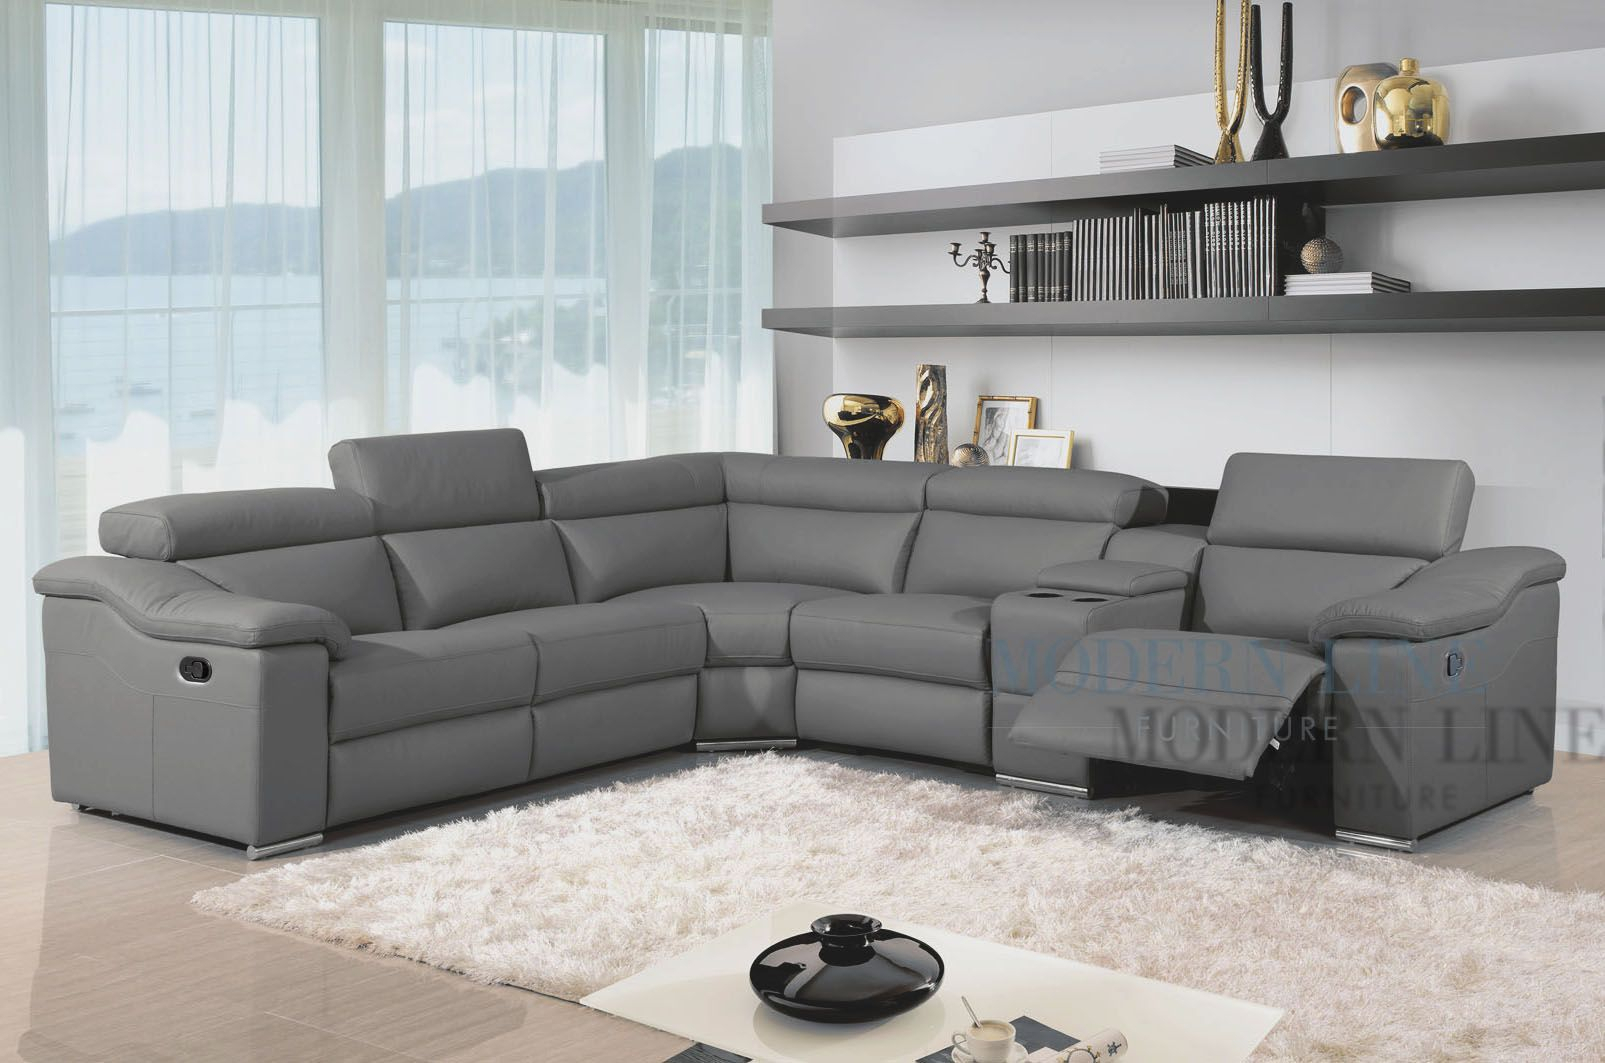 Awesome Great Charcoal Grey Sectional Sofa 29 About Remodel Home Throughout Gina Grey Leather Sofa Chairs (Image 4 of 20)